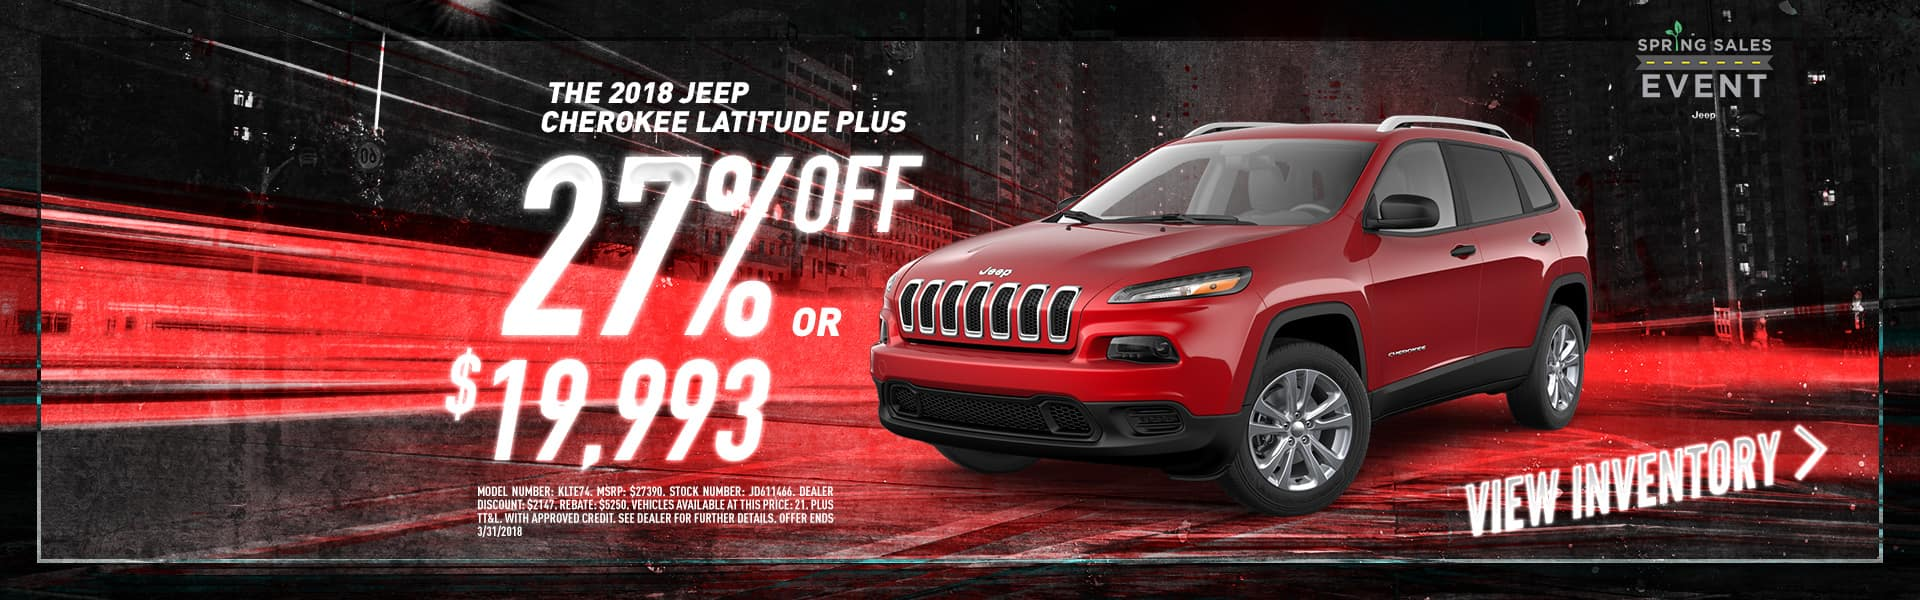 2018-jeep-cherokee-latitude-plus-dallas